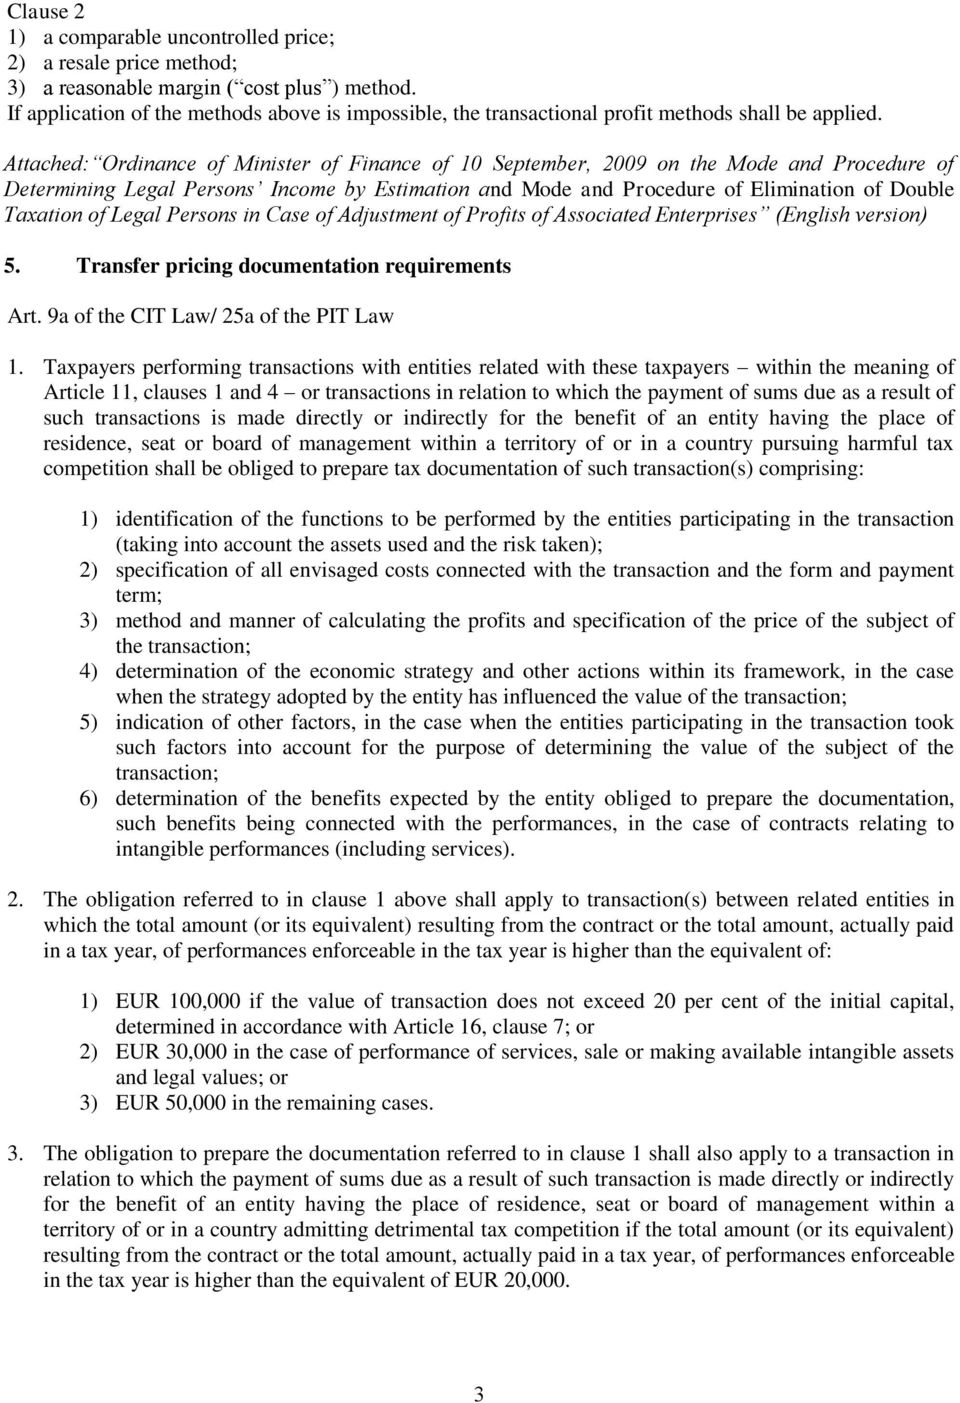 Attached: Ordinance of Minister of Finance of 10 September, 2009 on the Mode and Procedure of Determining Legal Persons Income by Estimation and Mode and Procedure of Elimination of Double Taxation